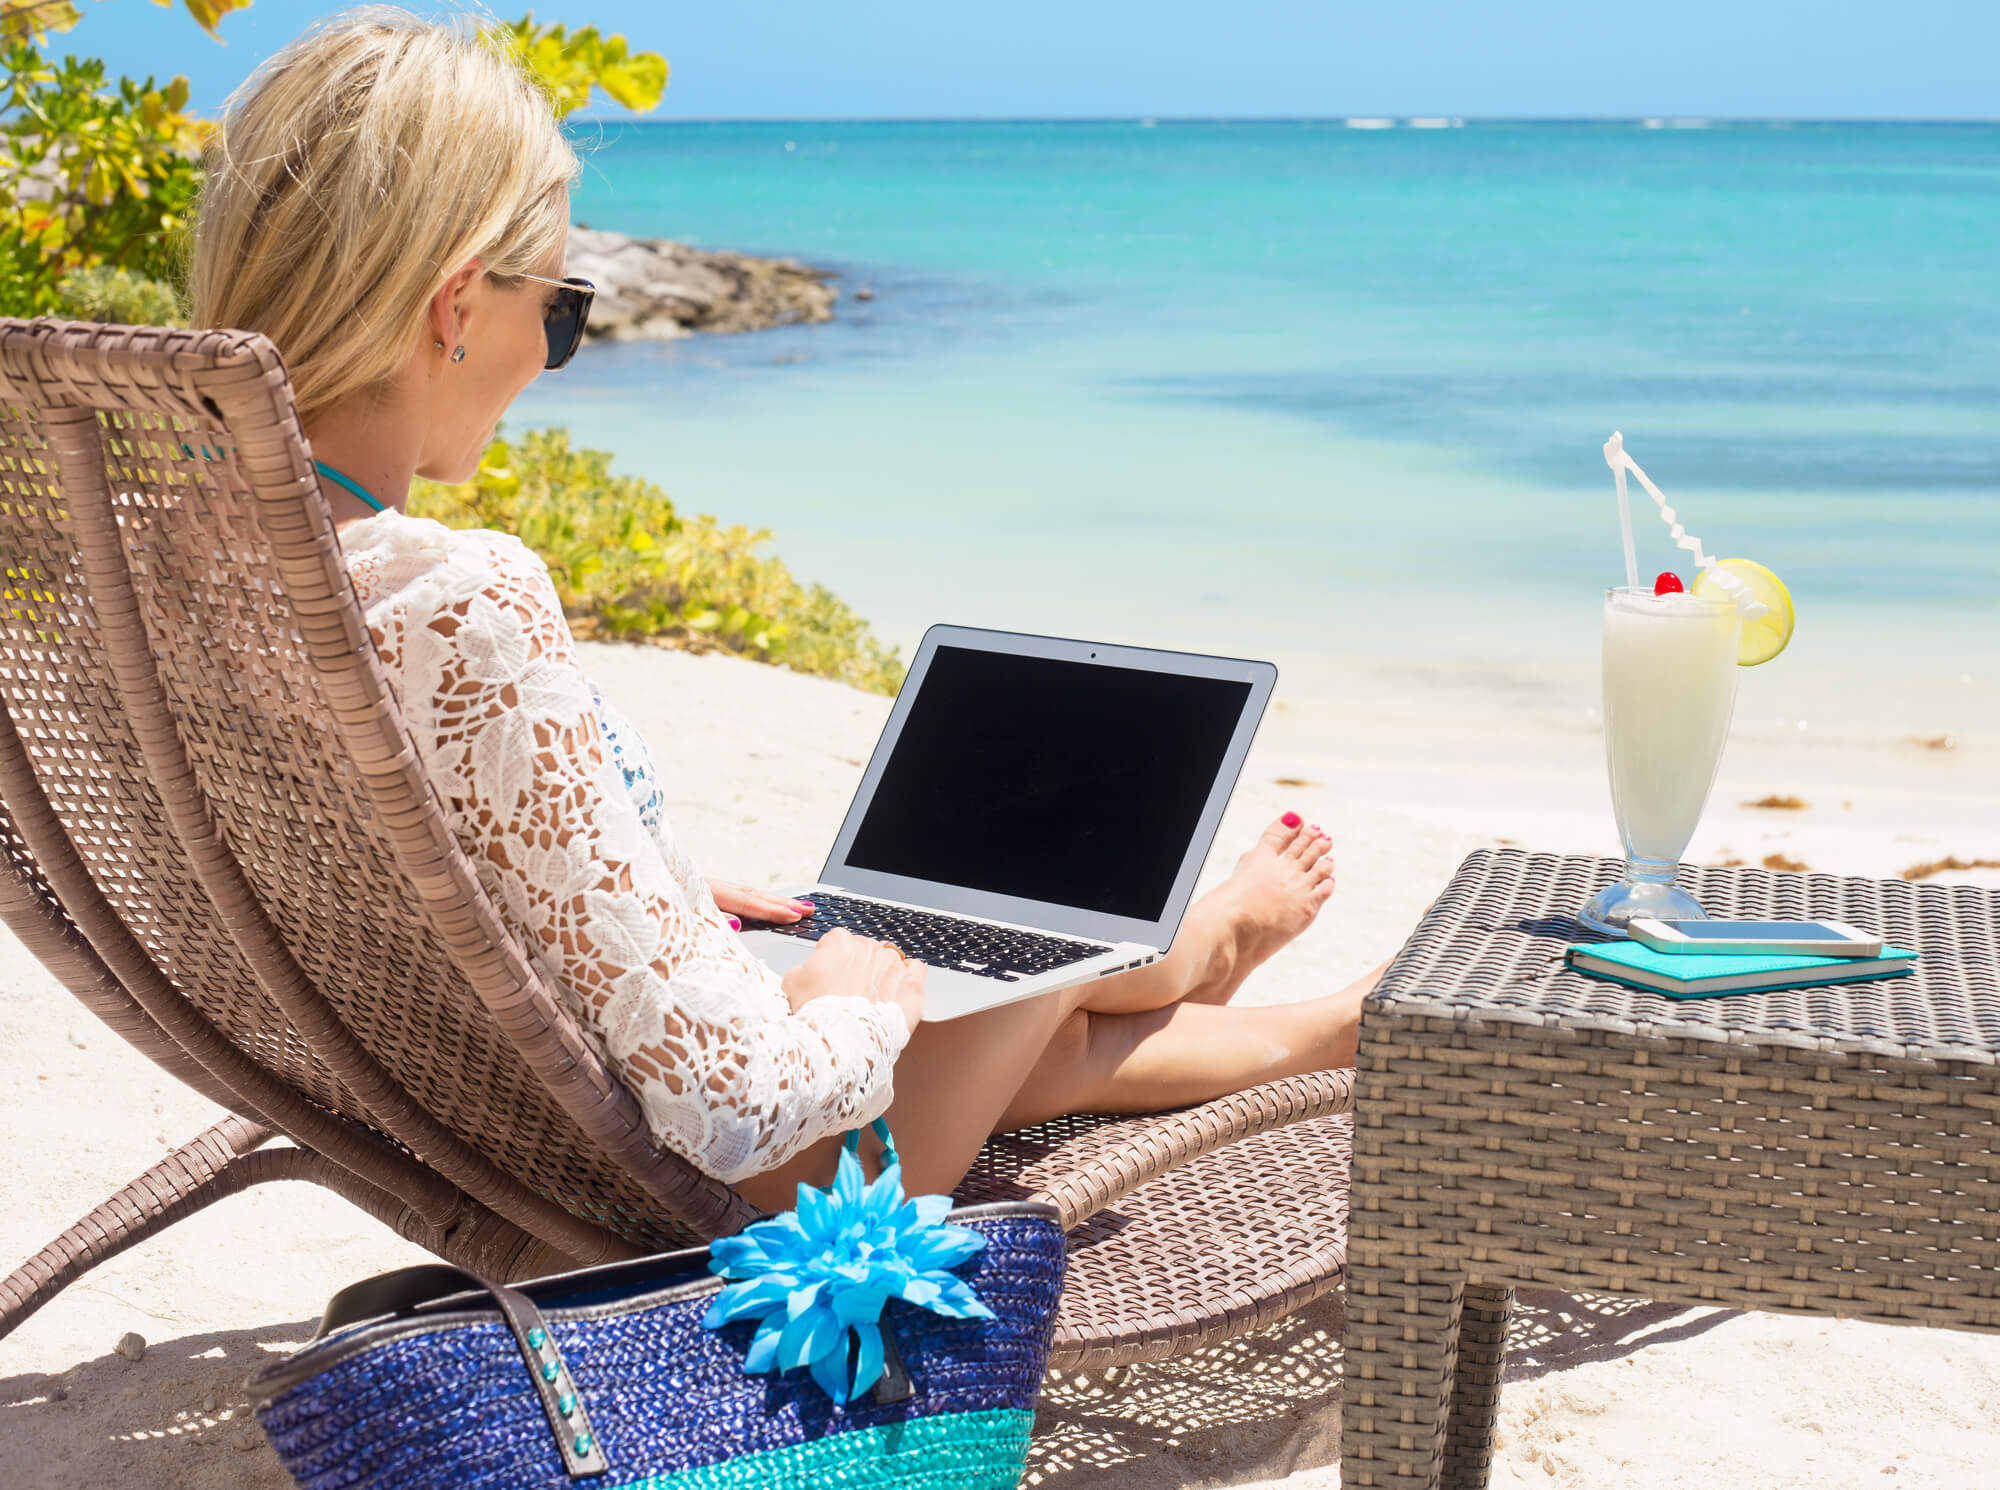 woman on beach with laptop